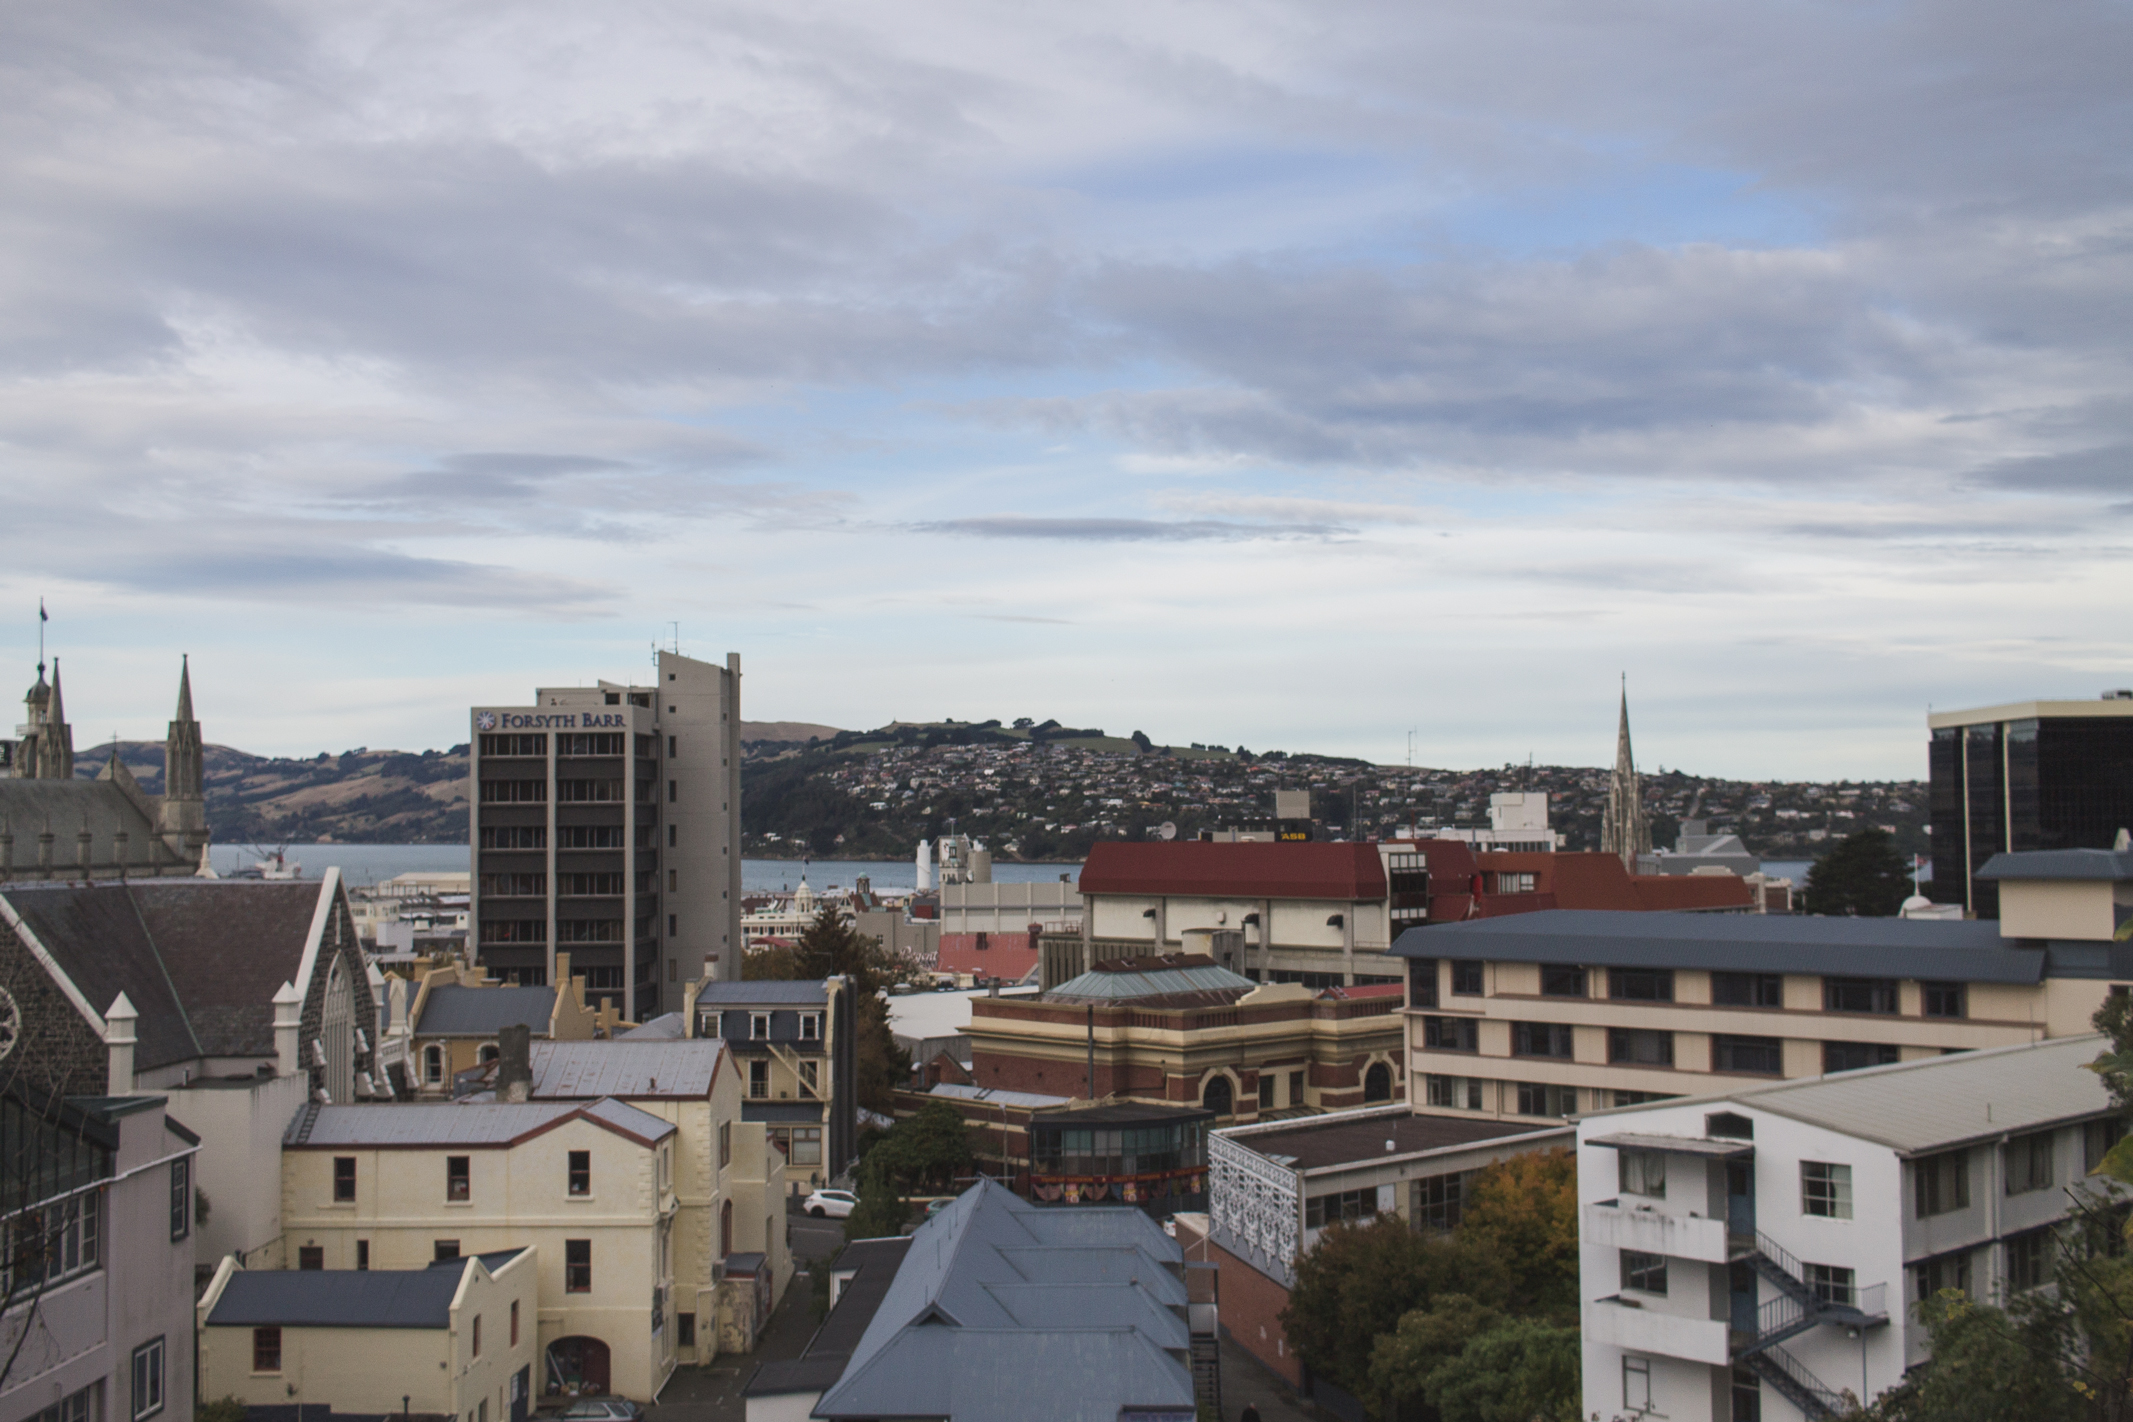 View of our town, Dunedin